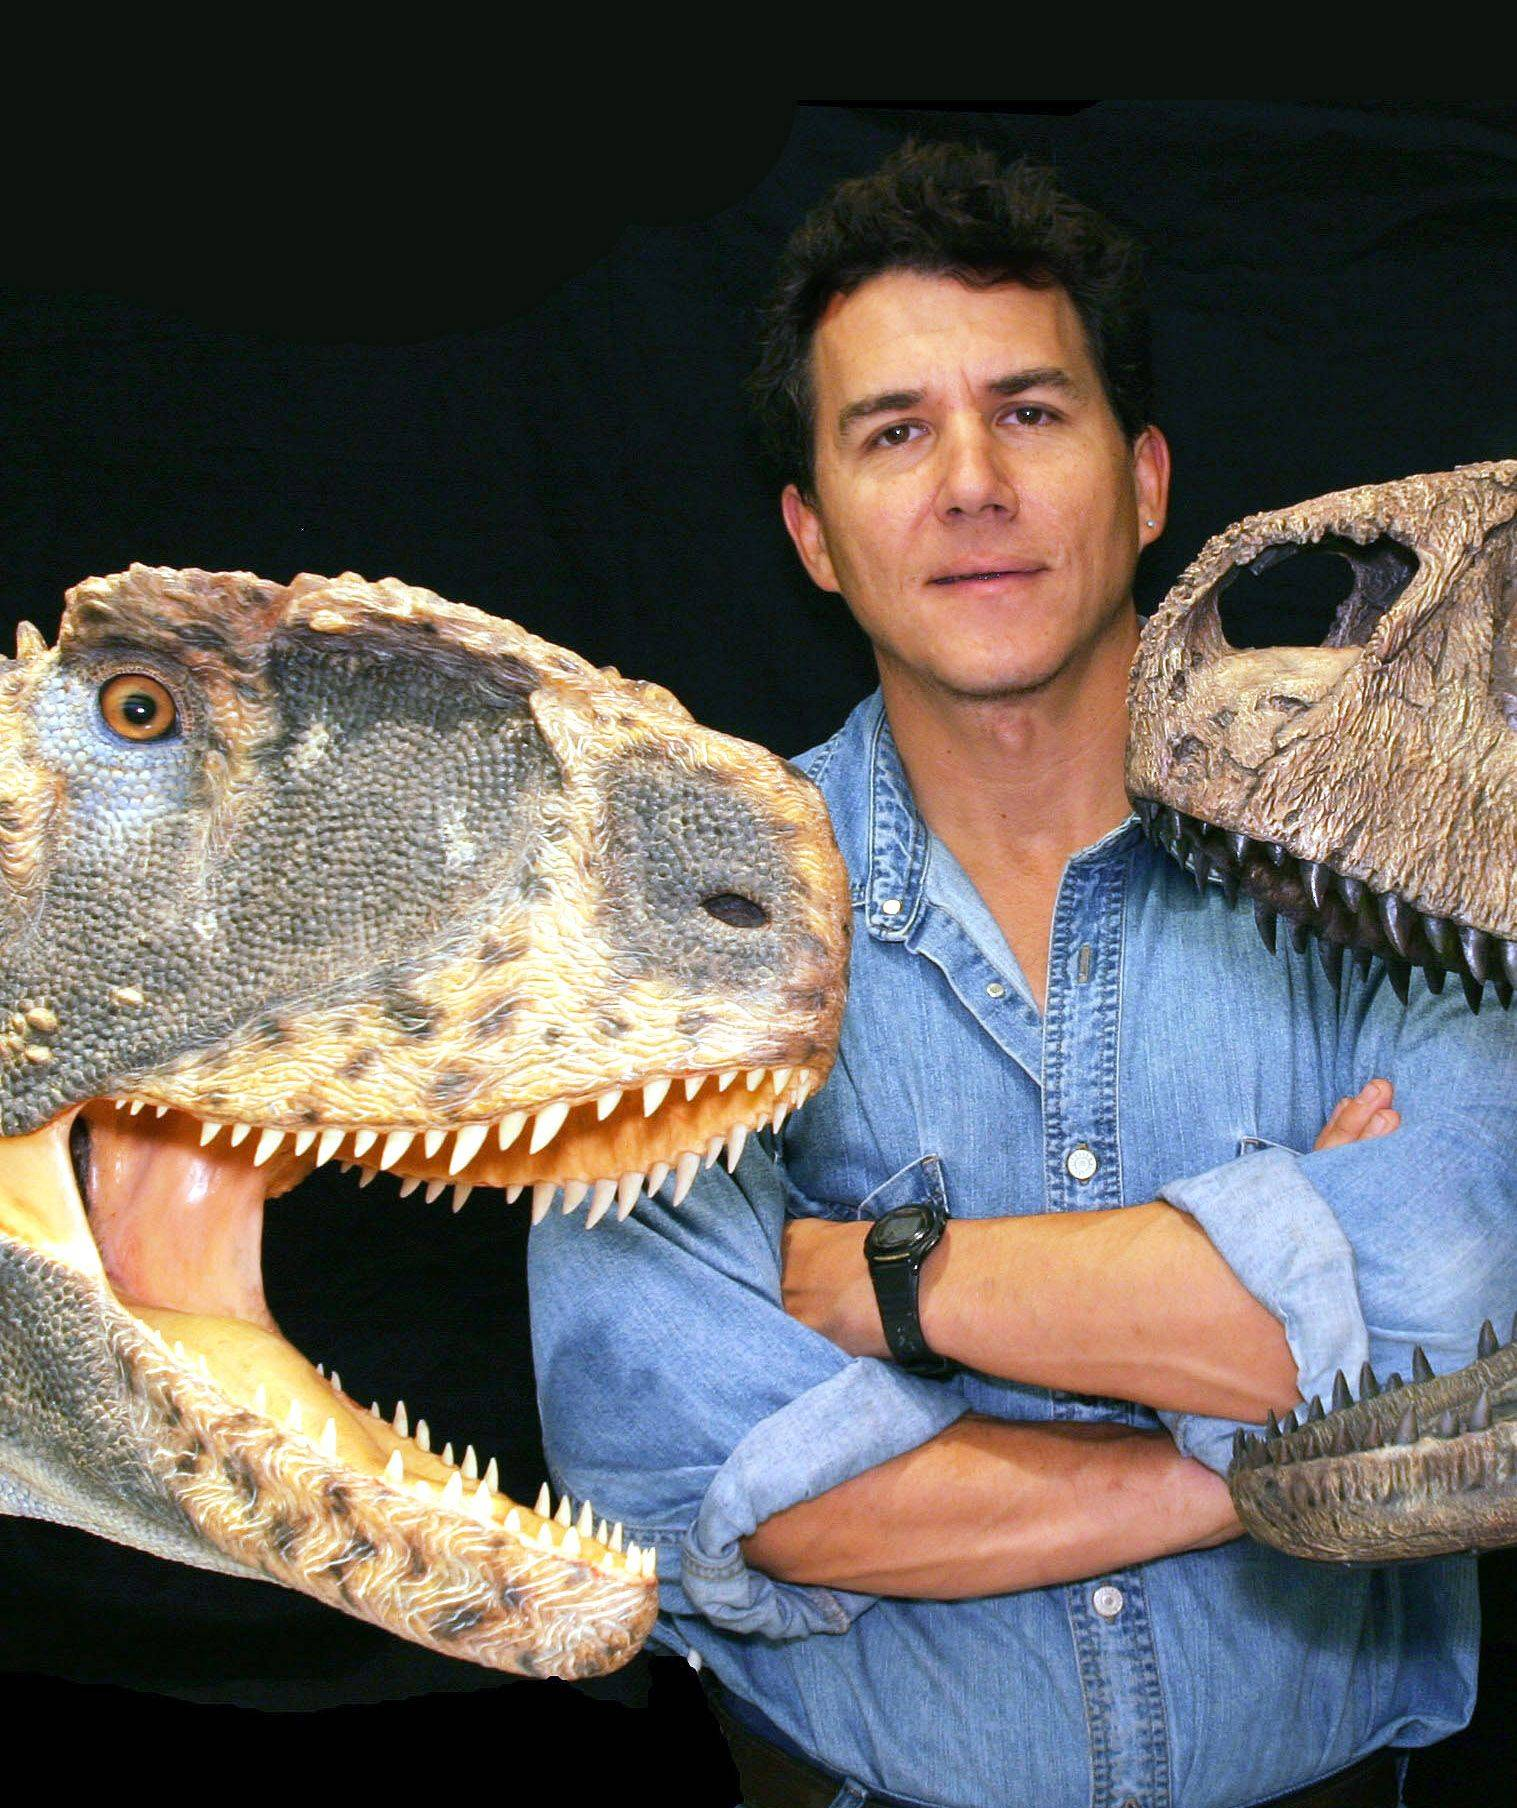 Dr. Paul Sereno holds a skull and reconstructed head of Rugops, one of his dinosaur discoveries, an 8-foot-tall beast with tiny arms that probably were useless for defense.